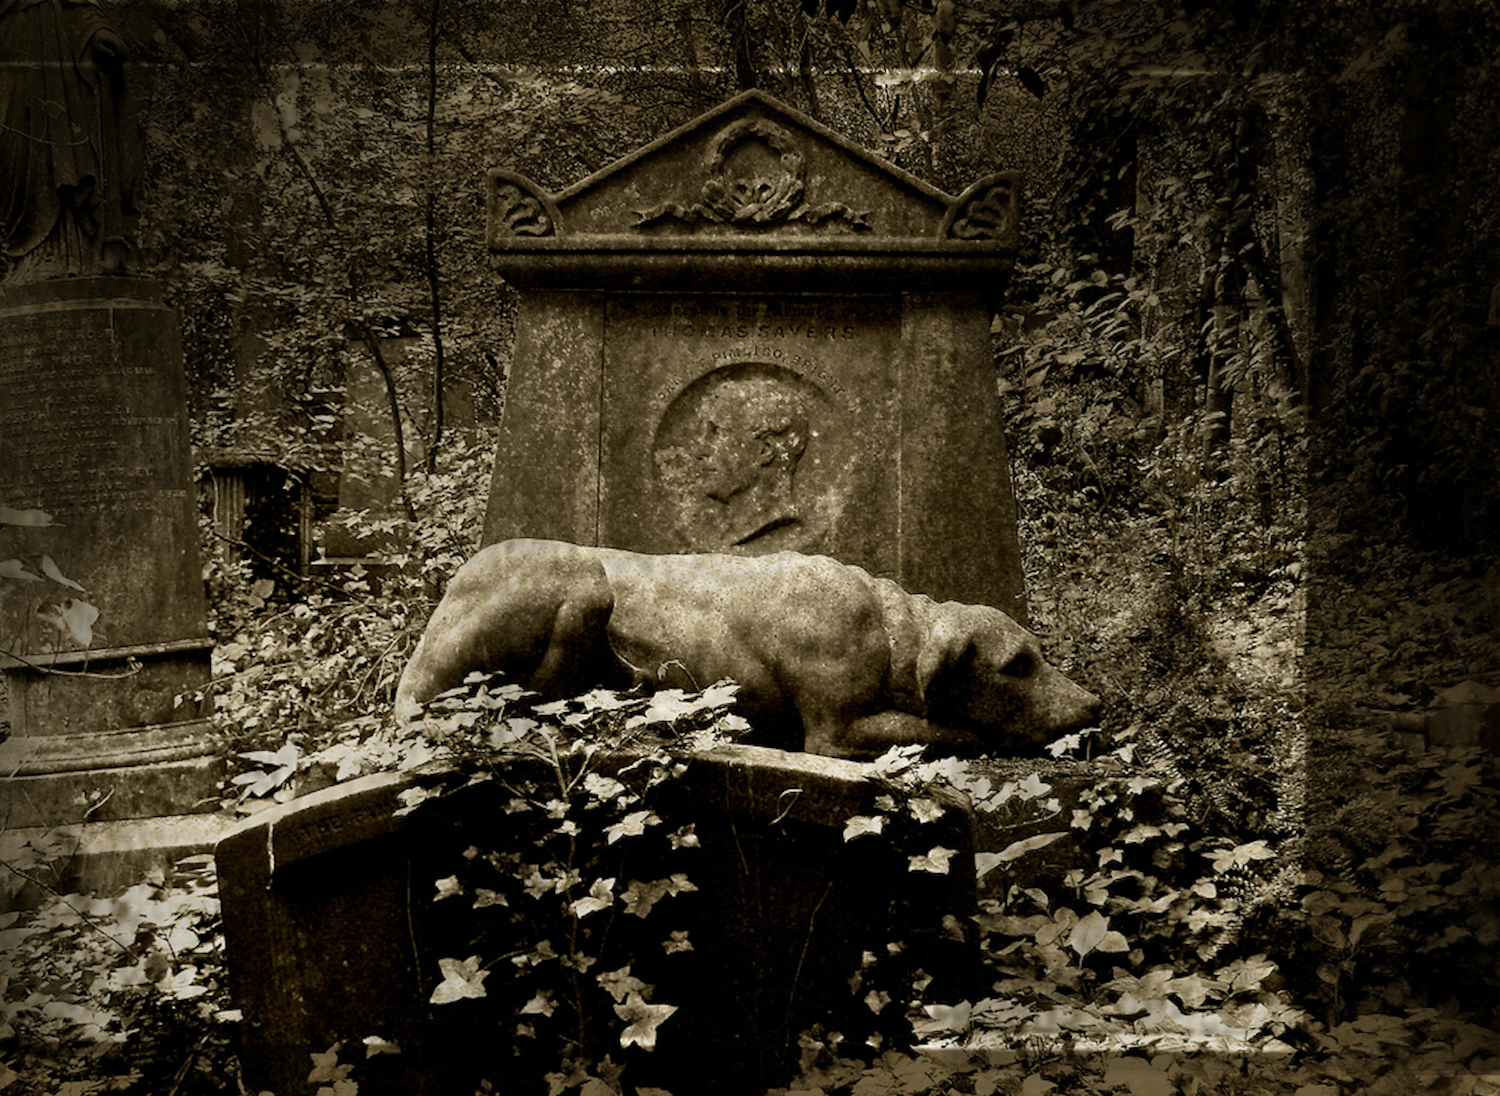 The stone image of Thomas Sayers' dog Lion on his tomb.